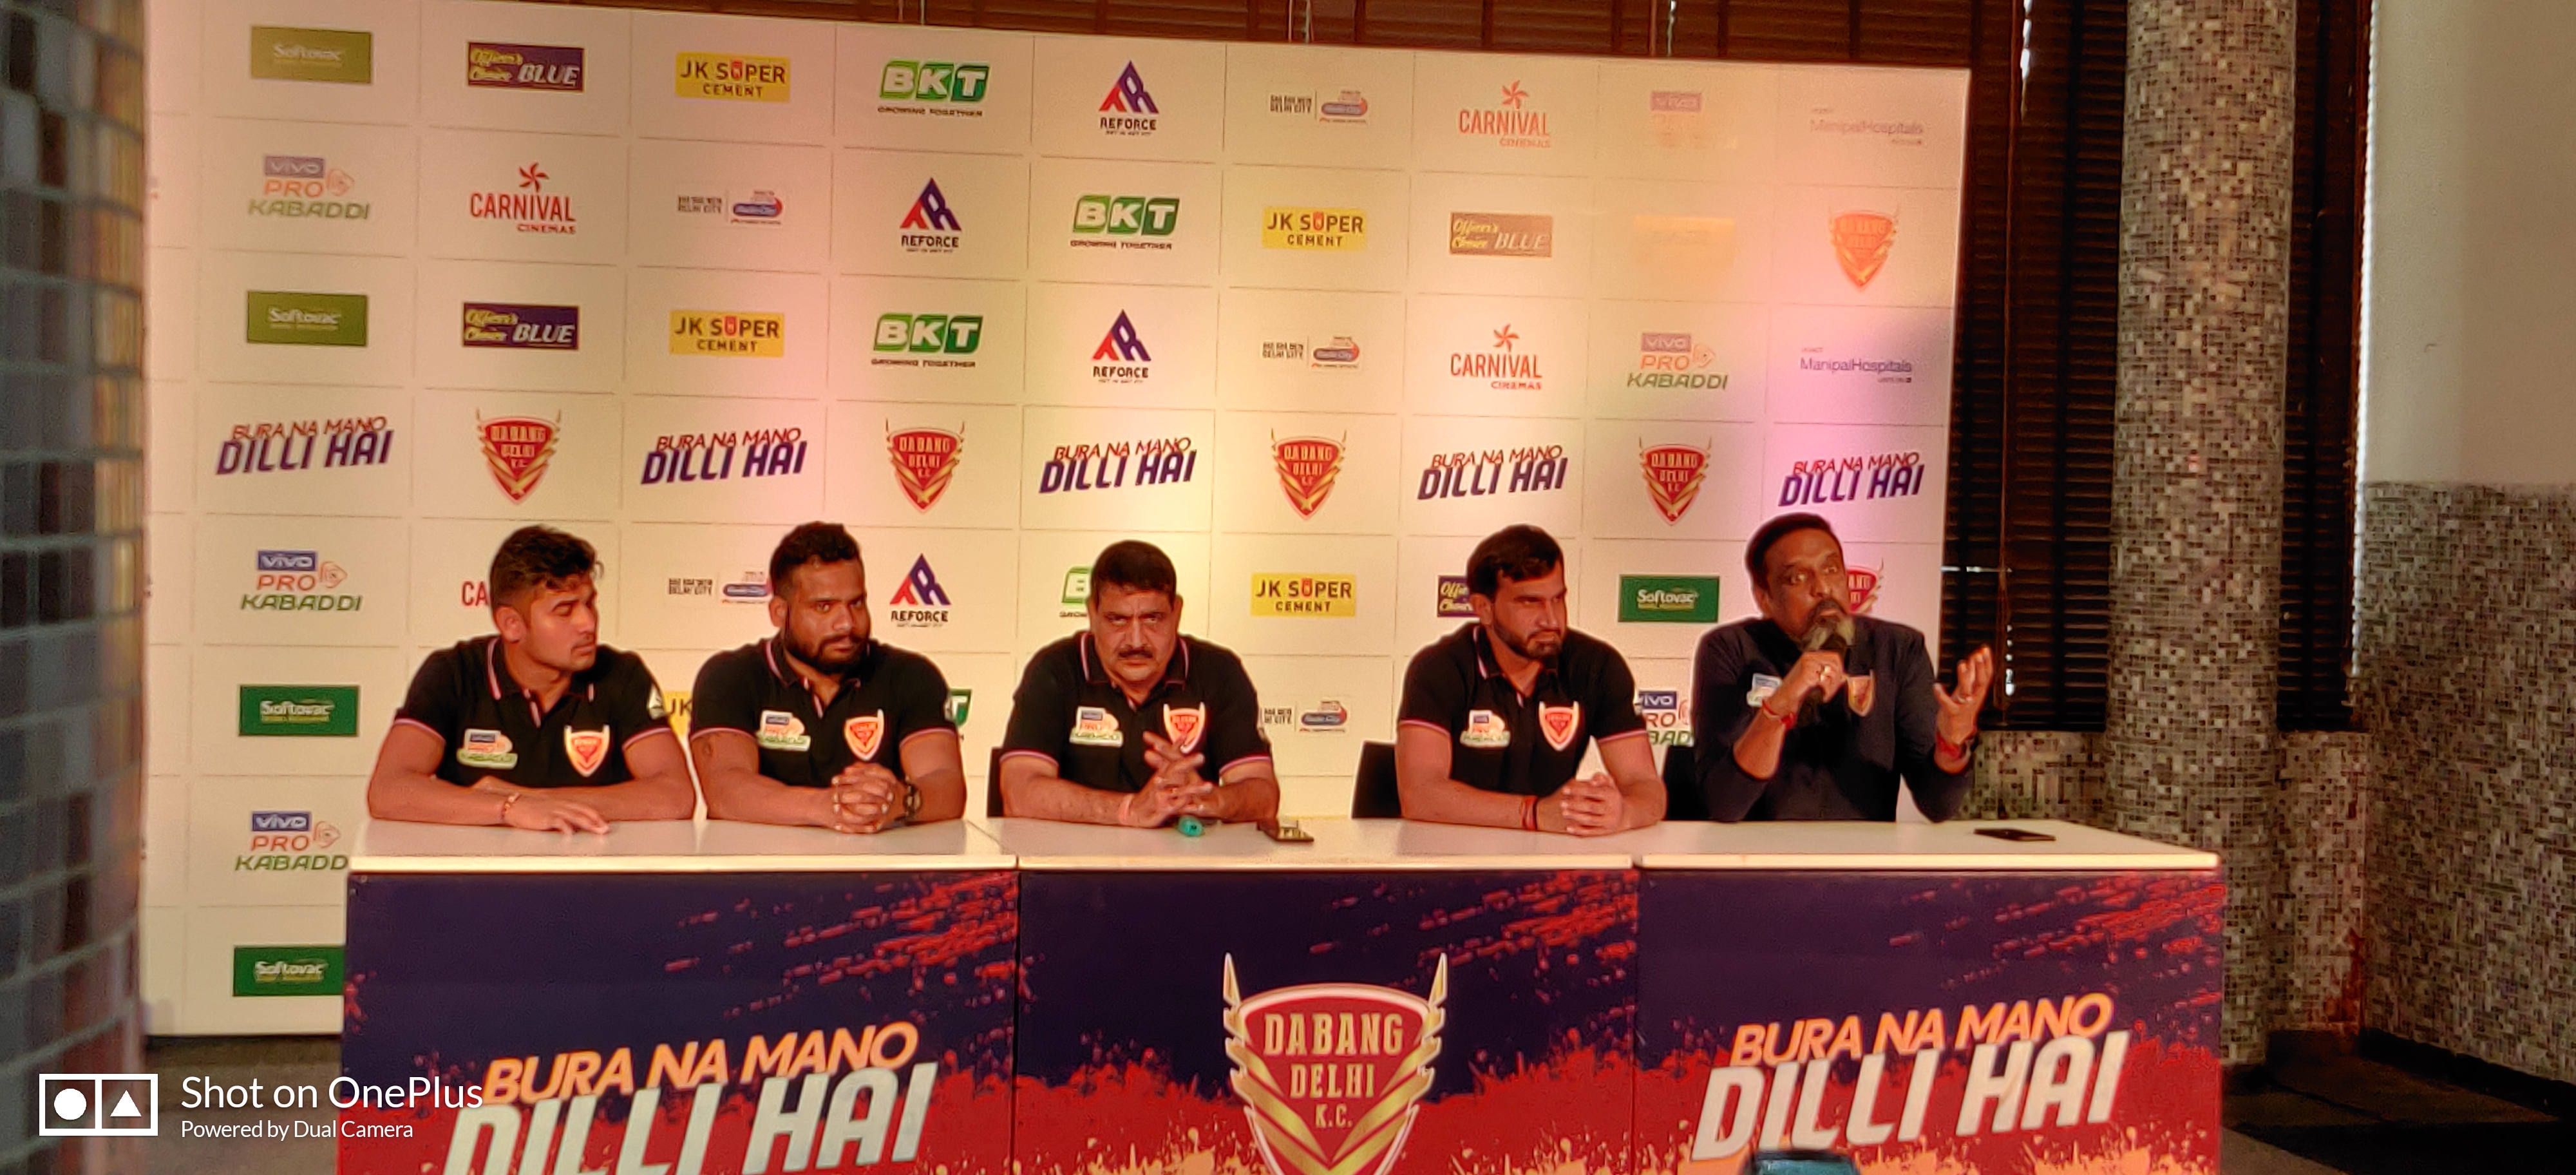 Dabang Delhi Kabaddi Team gathers for conference regarding